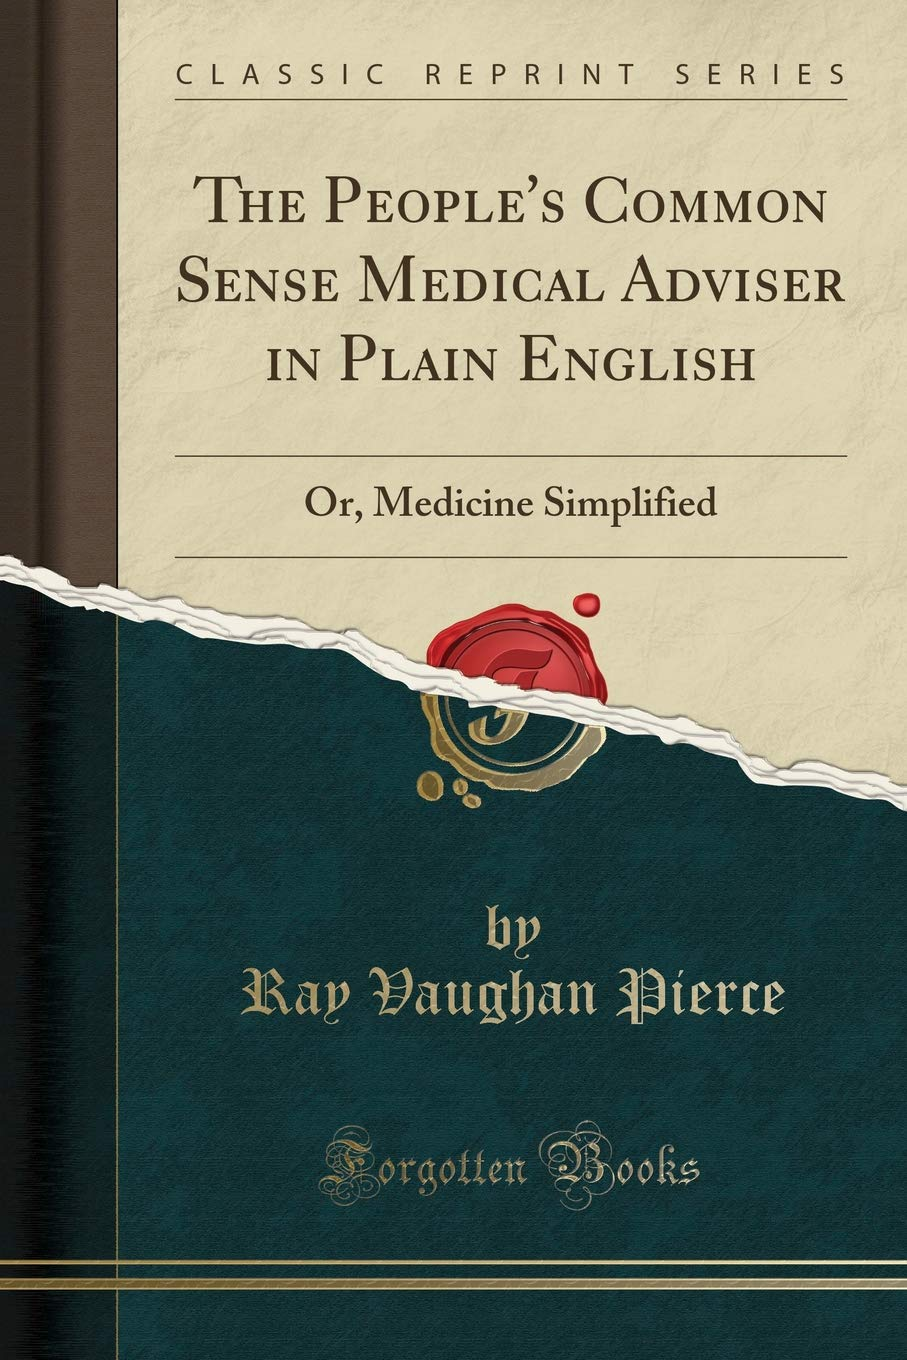 Download The People's Common Sense Medical Adviser in Plain English: Or, Medicine Simplified (Classic Reprint) ebook